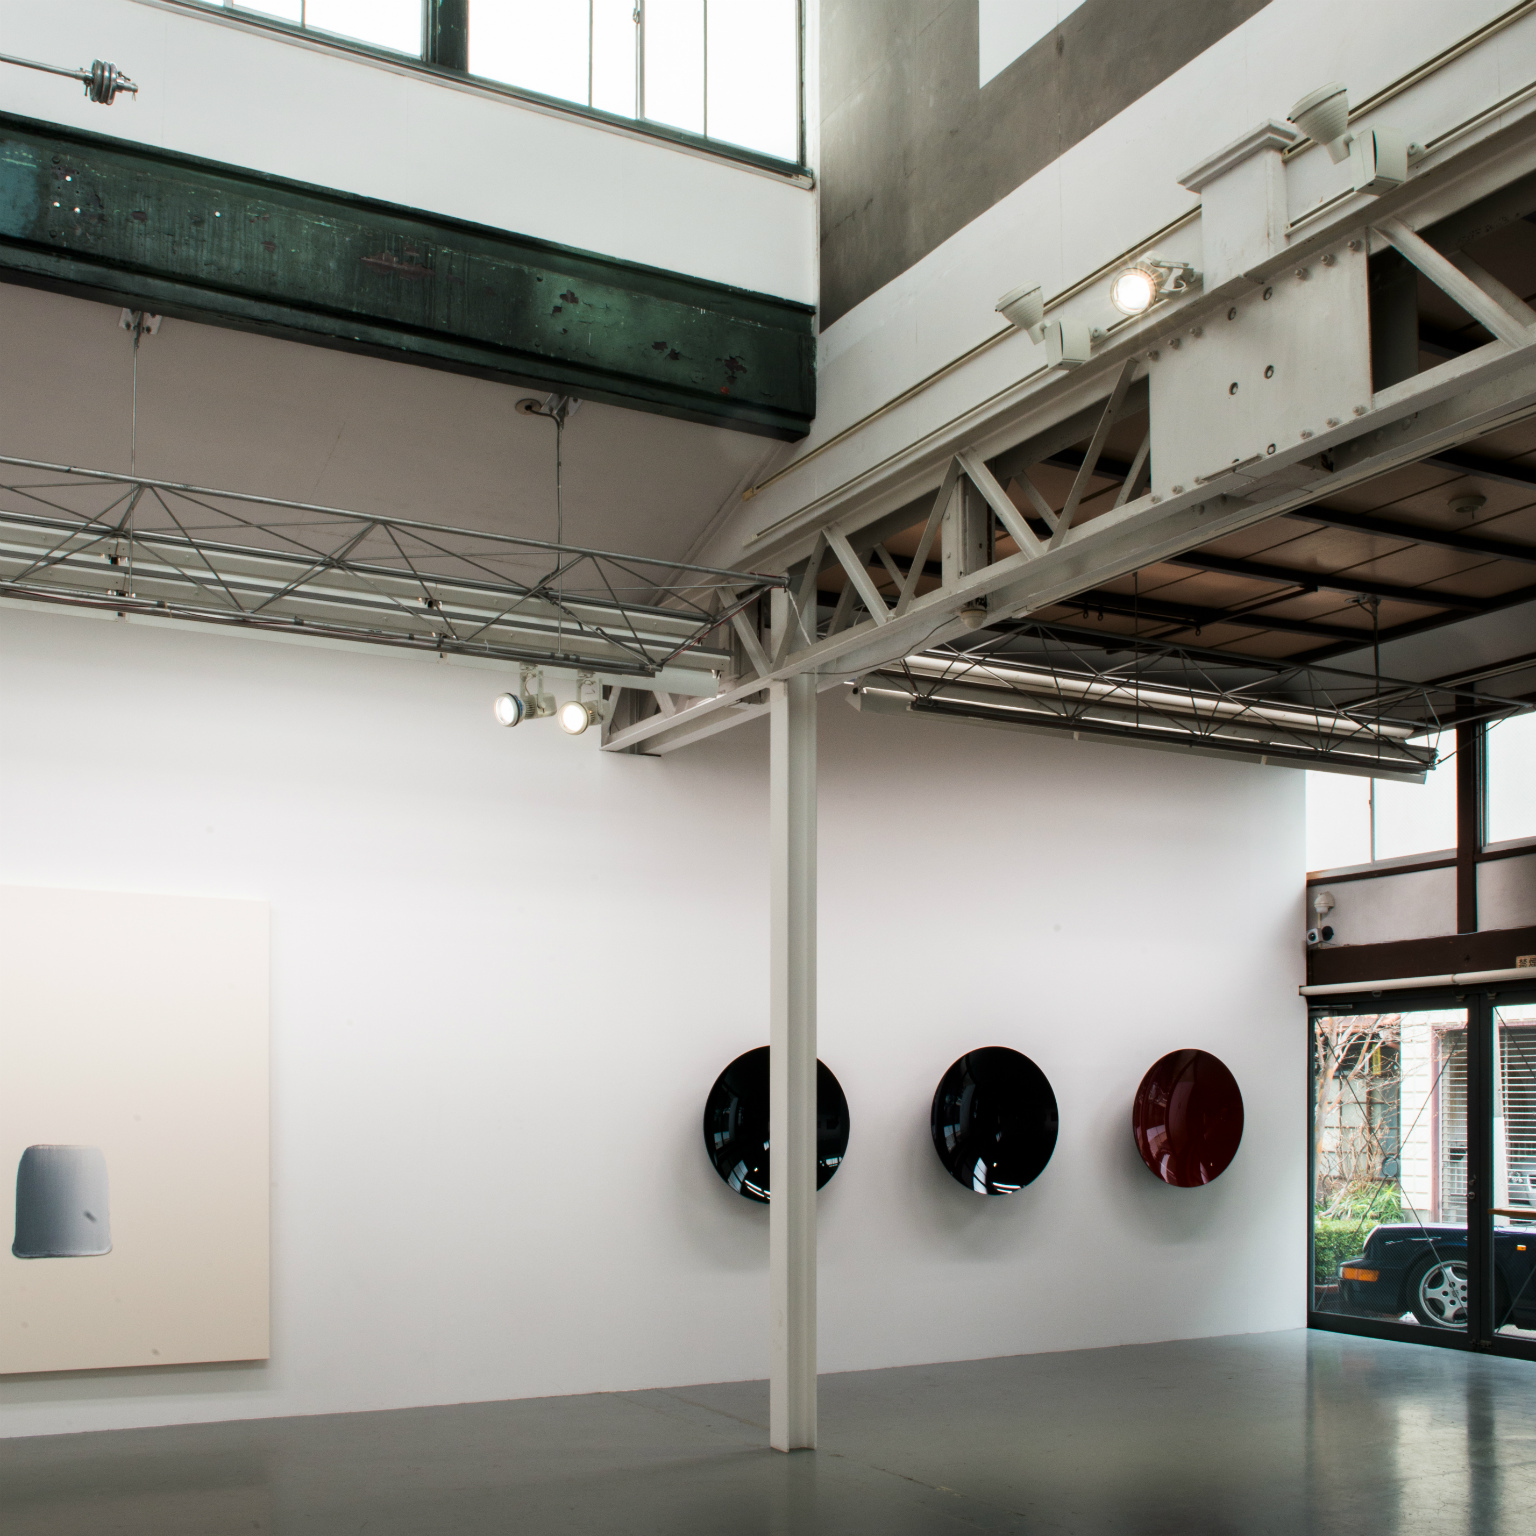 Ambitious art space with humble neighbourhood origins